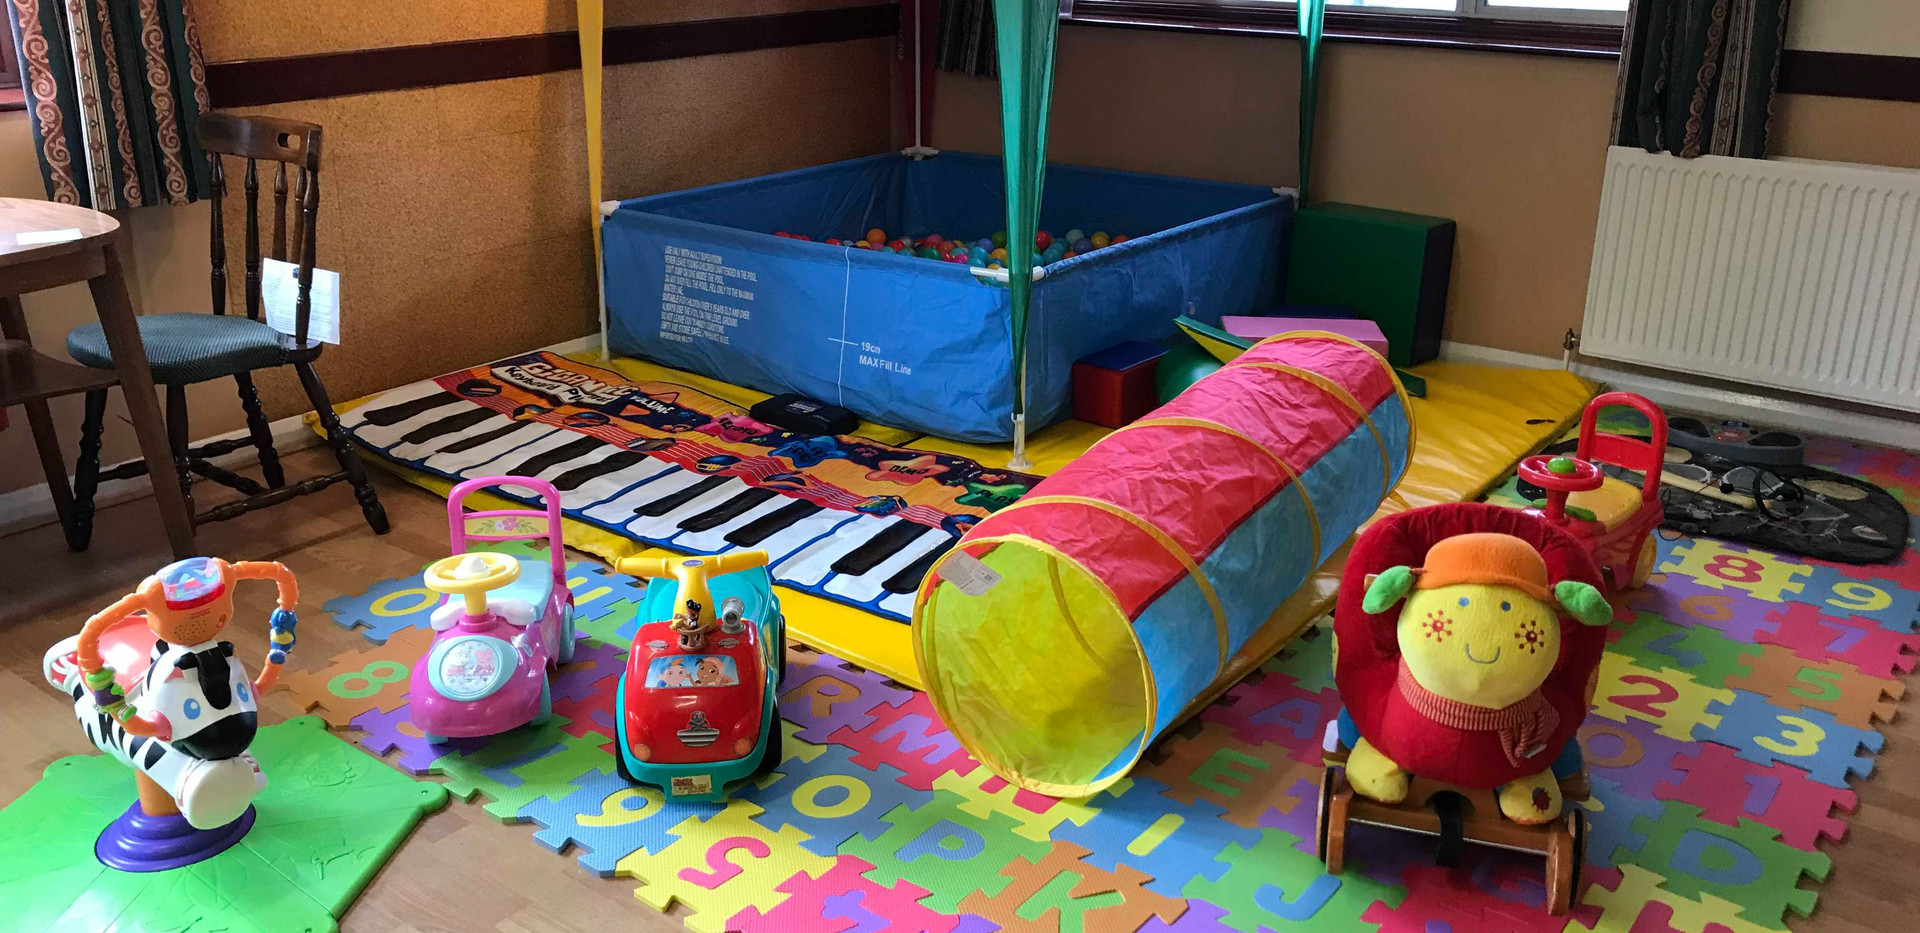 Soft play package photo 1 - www.bigbounc